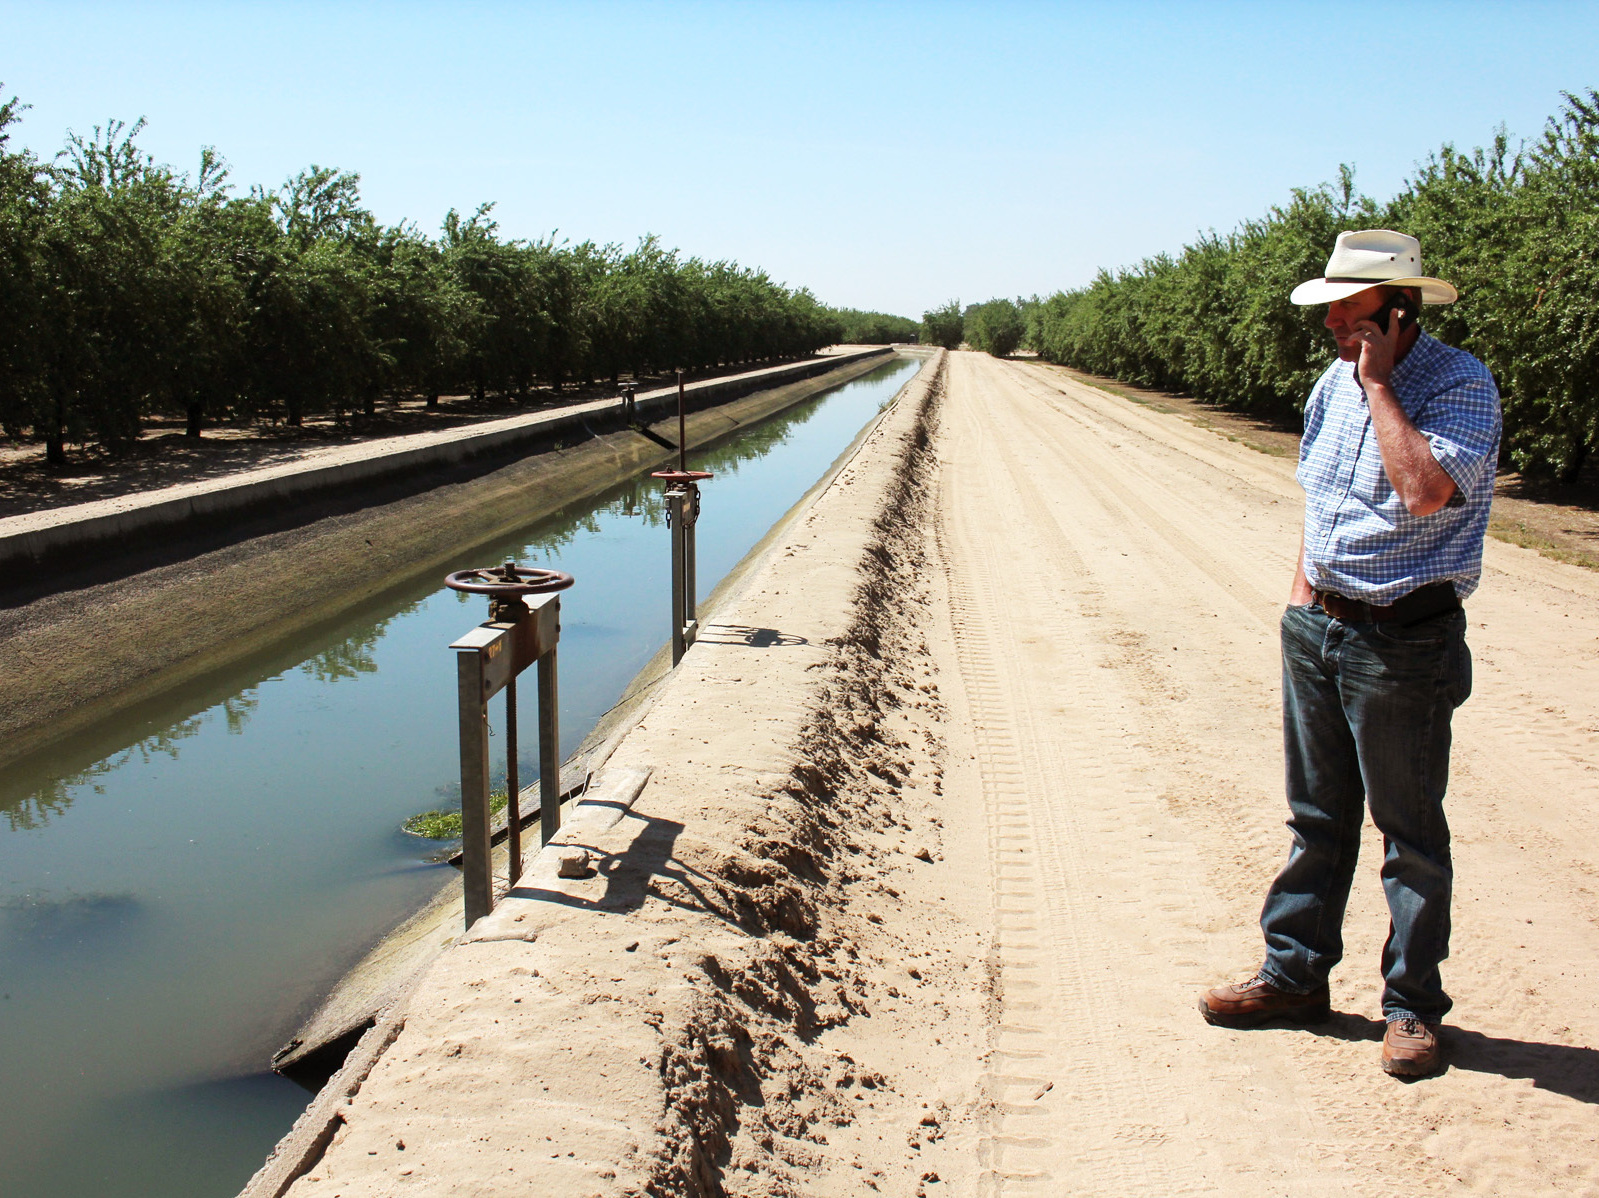 Allen Peterson's farm, near the city of Turlock, Calif., lies next to a concrete-lined canal full of water. He's one of the lucky ones. Photo: Dan Charles/NPR